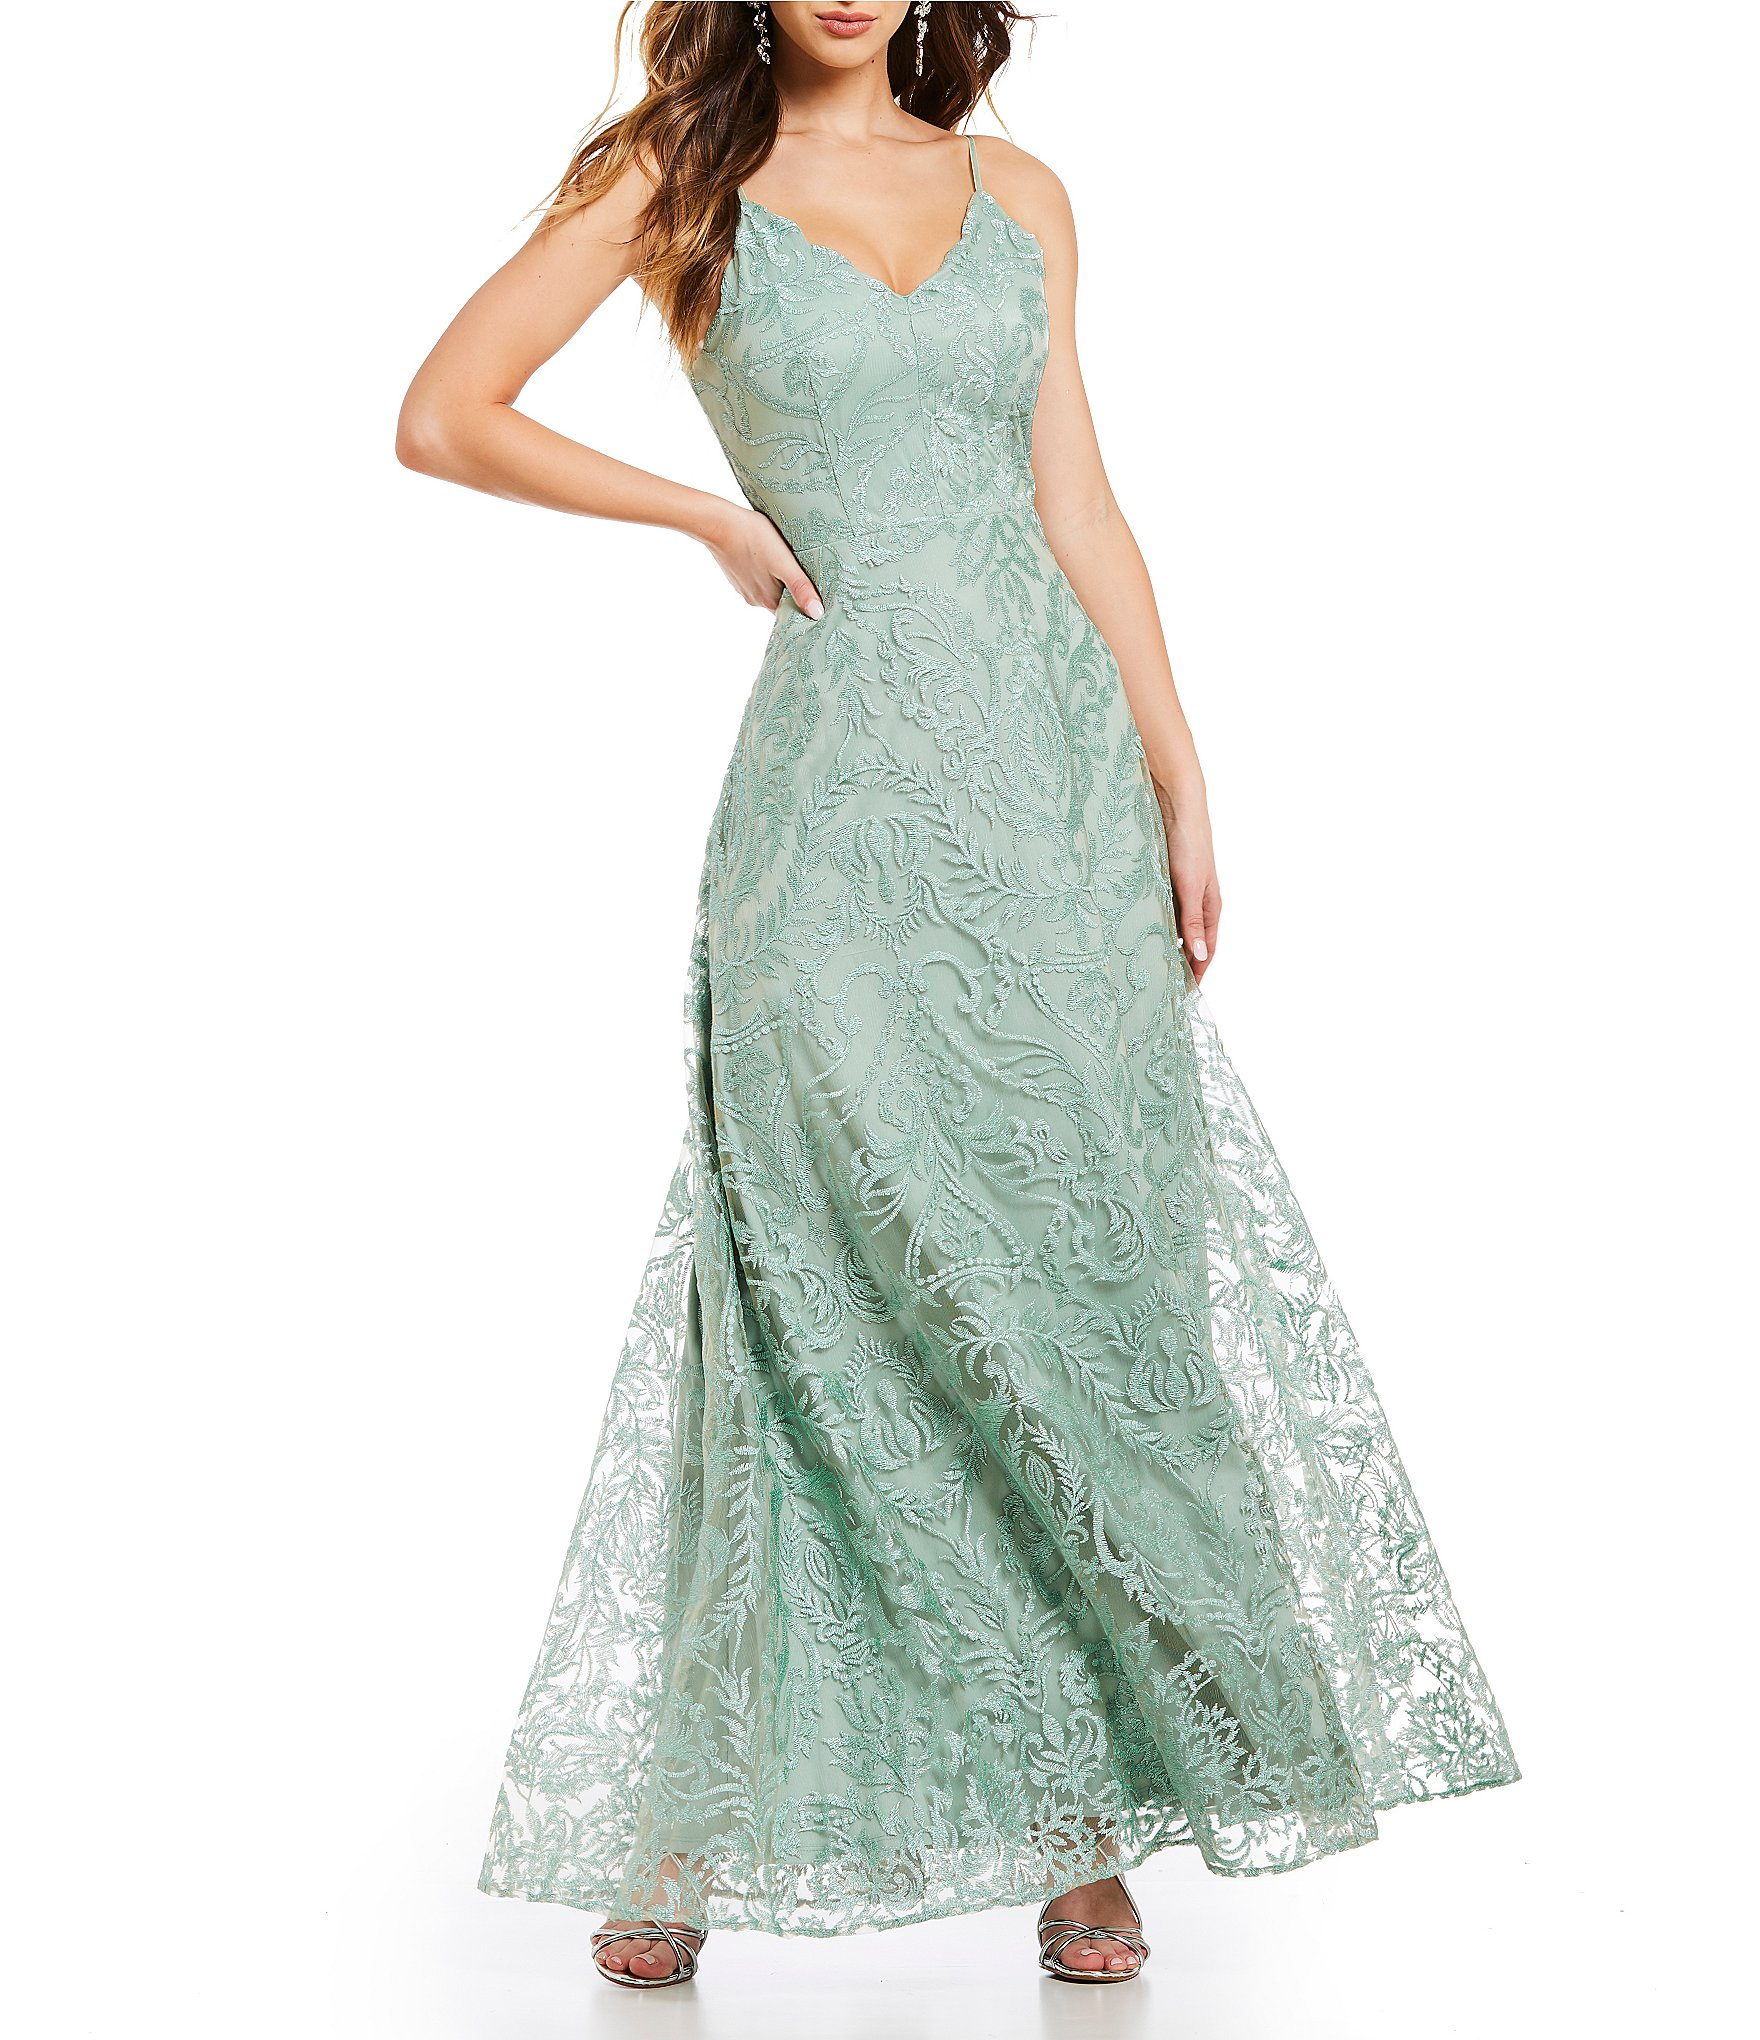 Juniors\' Lace Dresses | Dillards